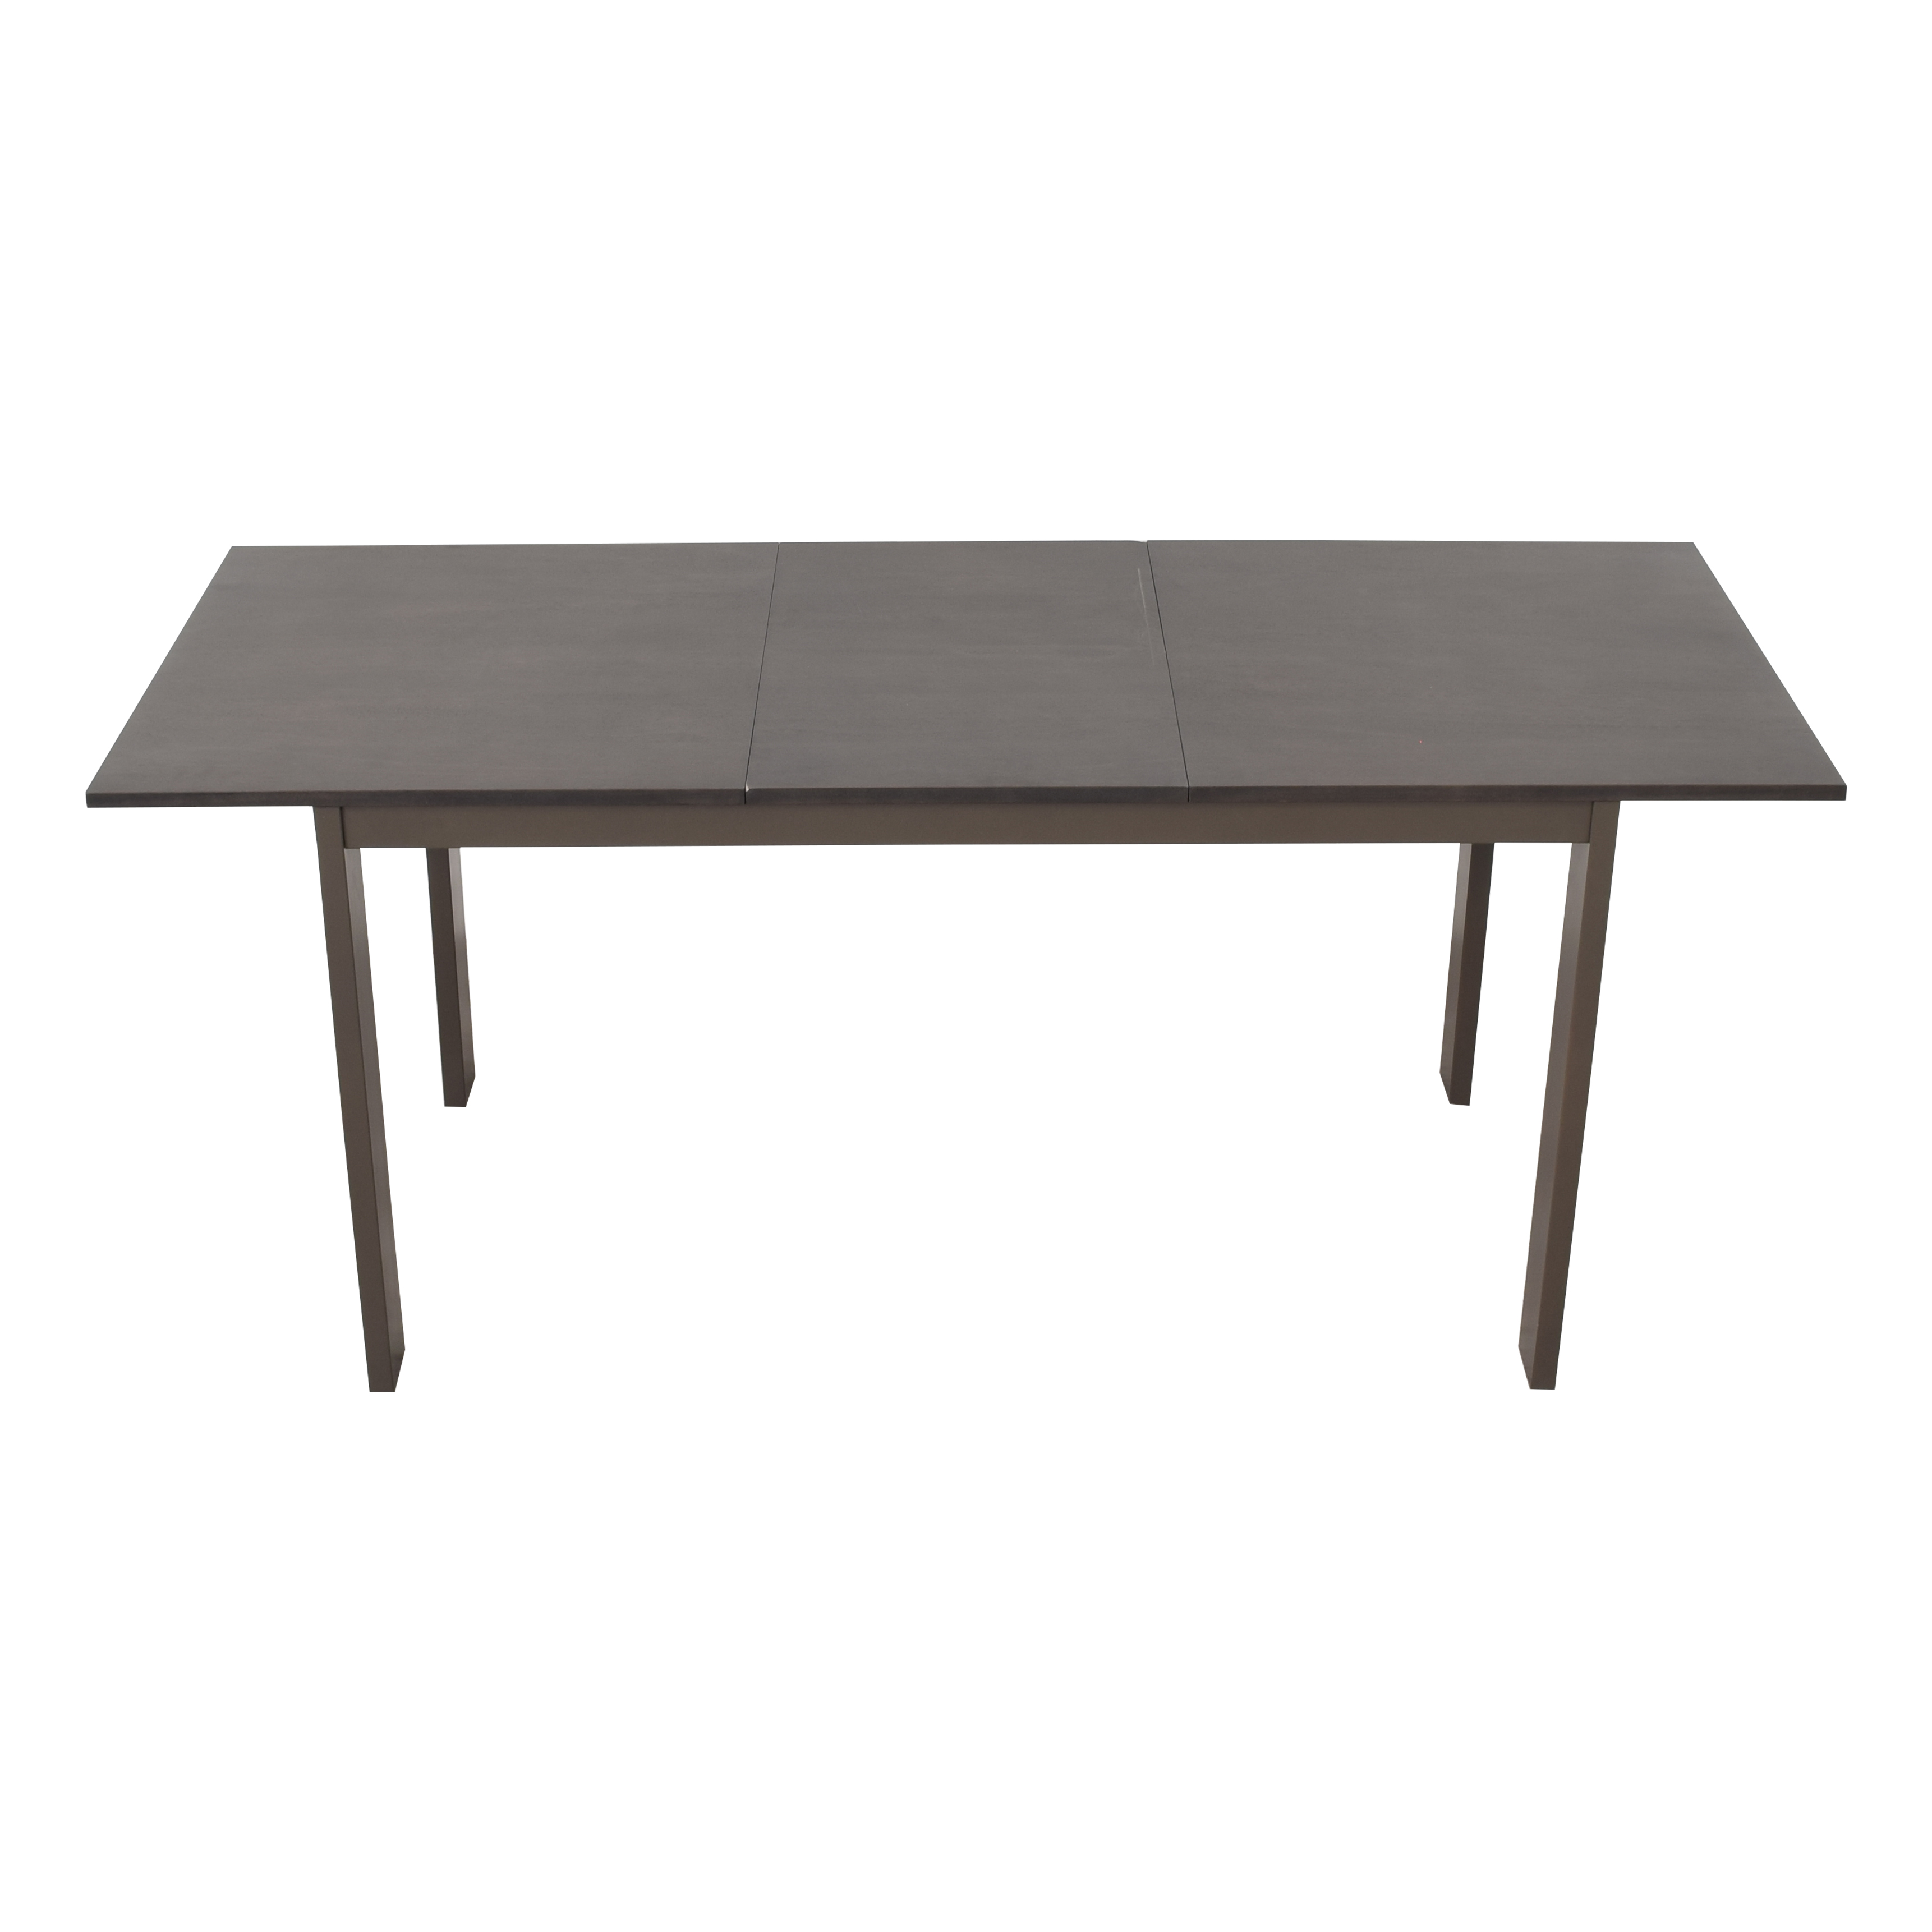 CB2 CB2 Core Extension Dining Table ma